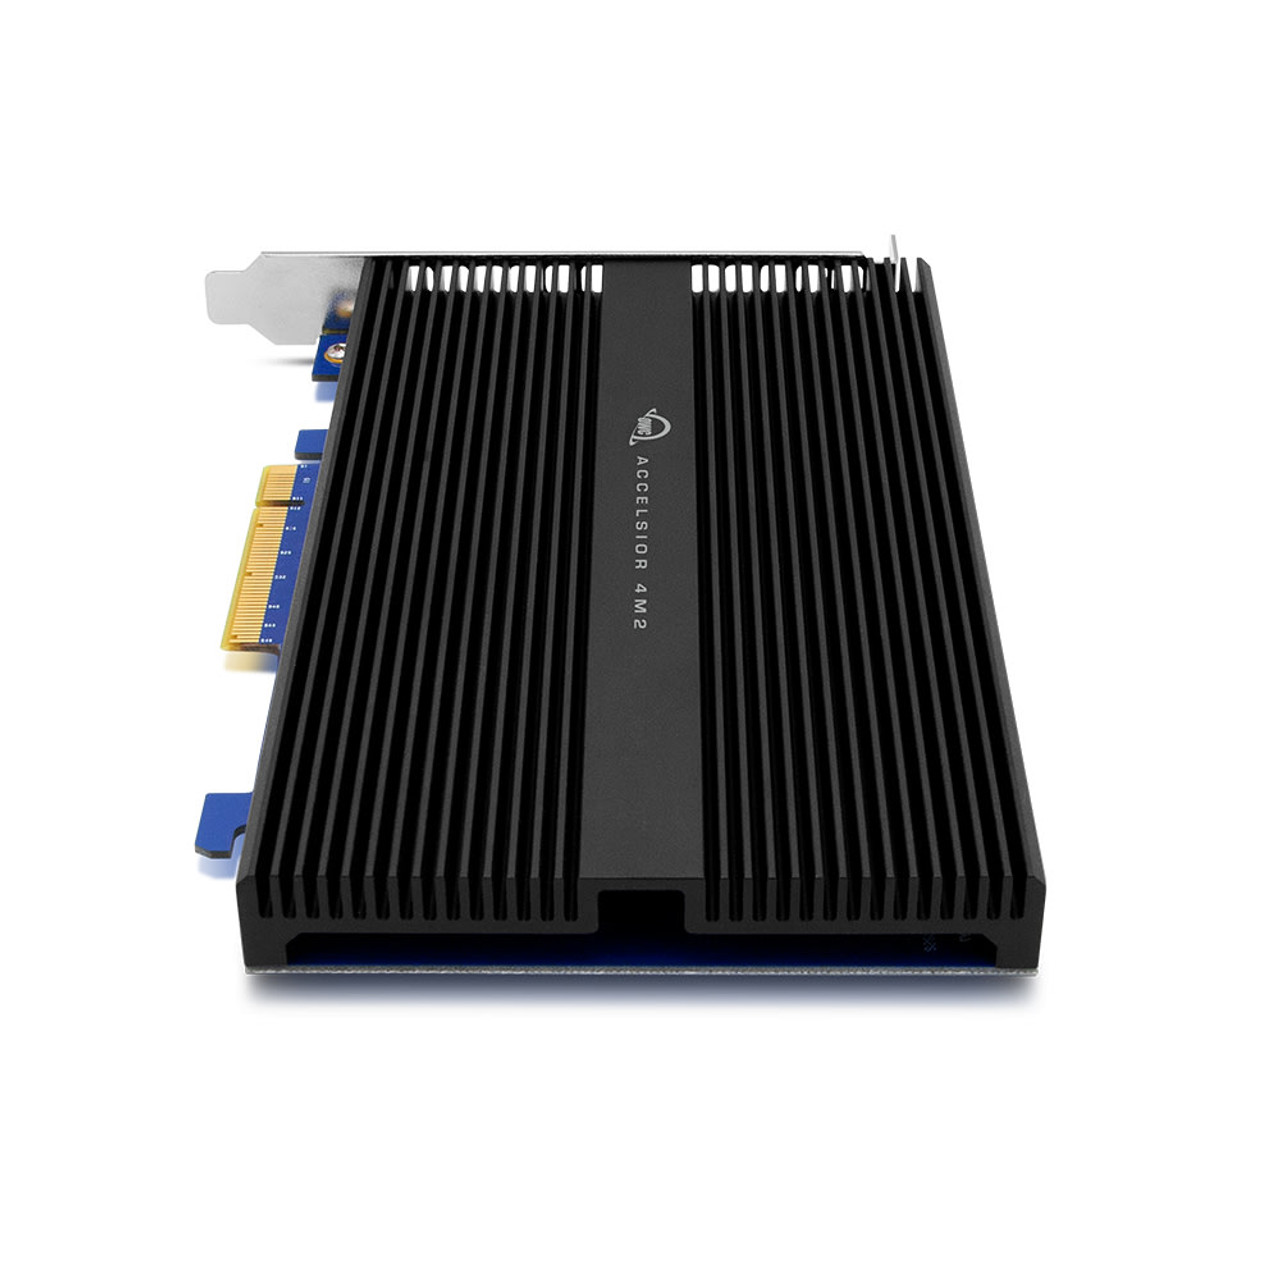 OWC 4.0TB Accelsior 4M2 High-Performance PCIe M.2 NVMe SSD Adapter Card